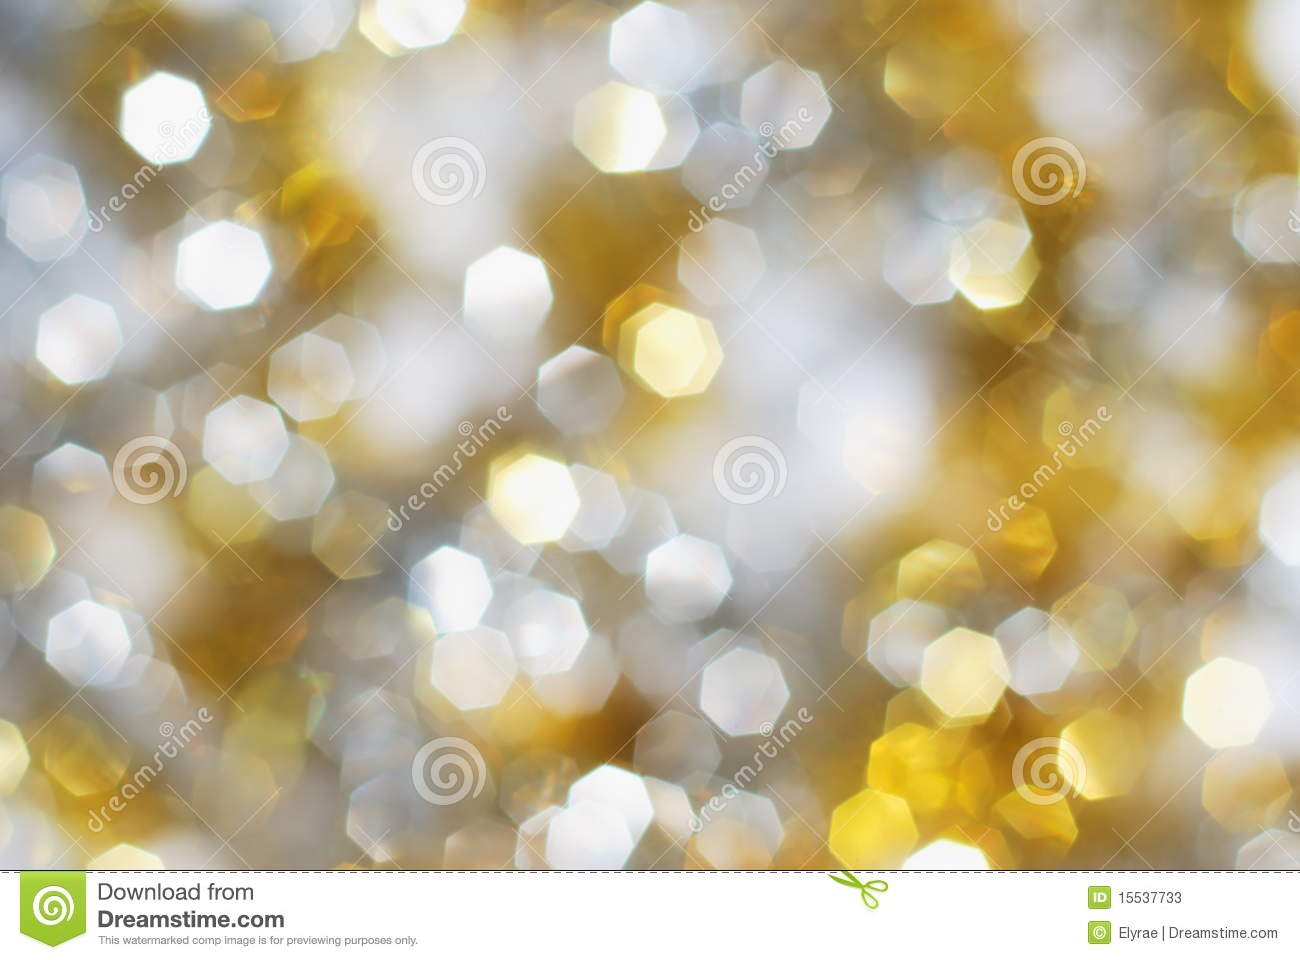 Silver and gold lights background